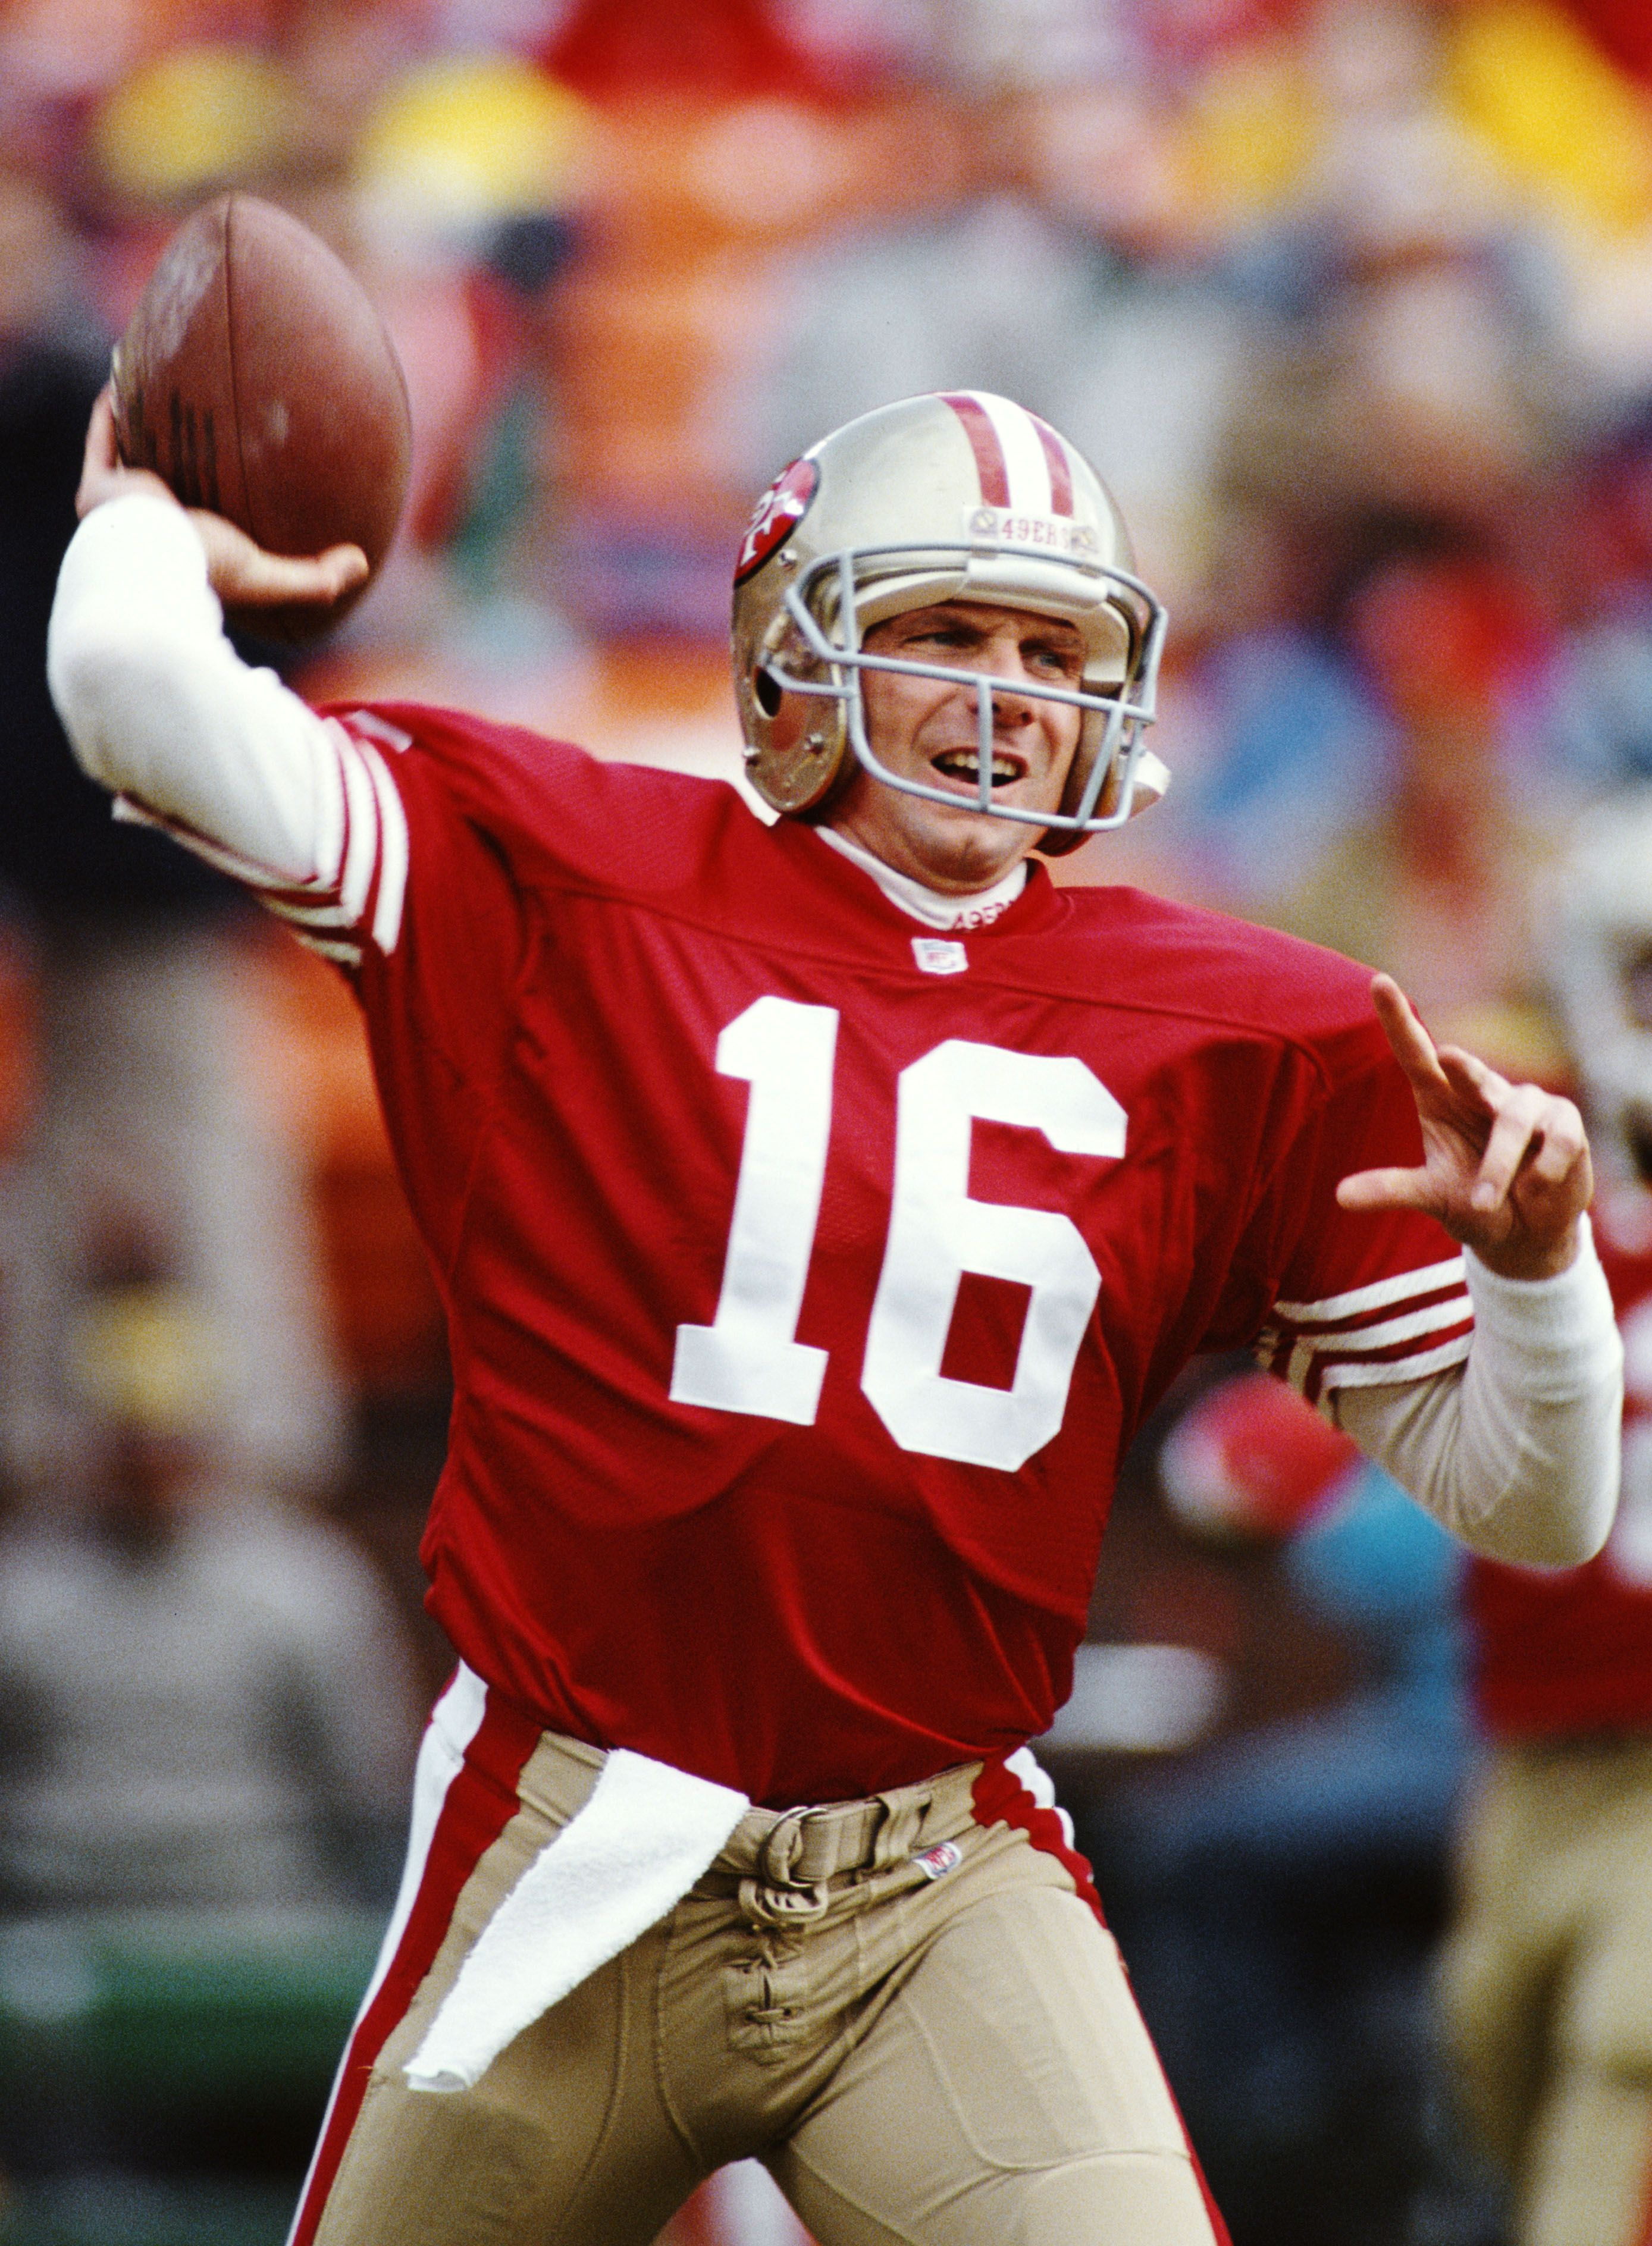 Football Legend Joe Montana Invested in a Legal Marijuana